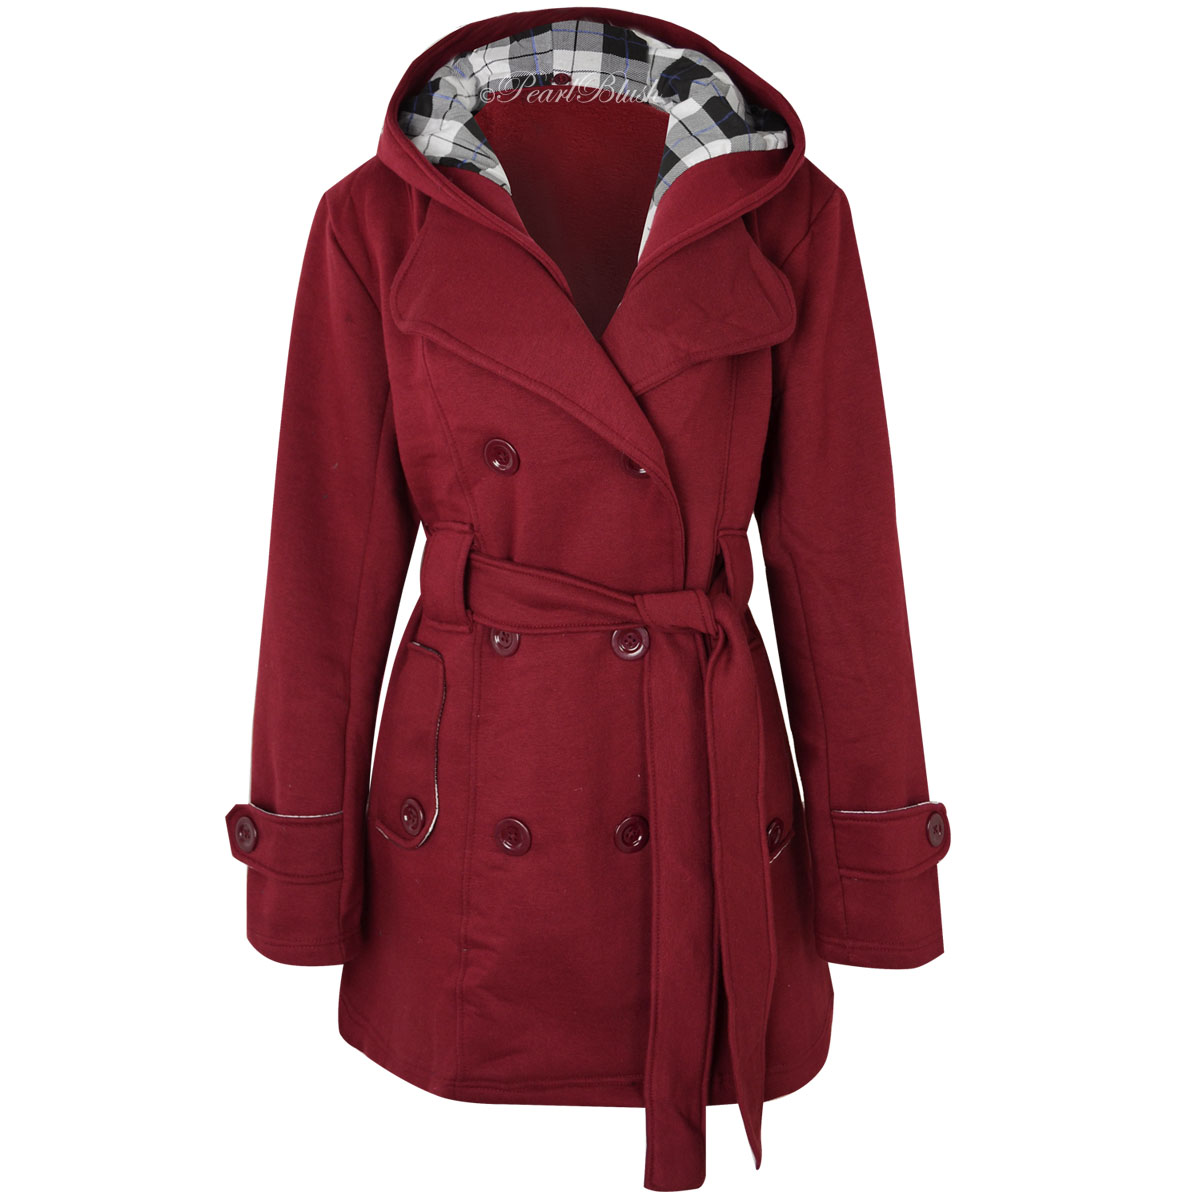 Stay warm and on-trend in our women's trench coats. A wardrobe staple for colder months, lend a smart finish to your look with longline and belted macs. Stylish cuff details, buttons and faux fur hooded designs make these a fashion must-have.